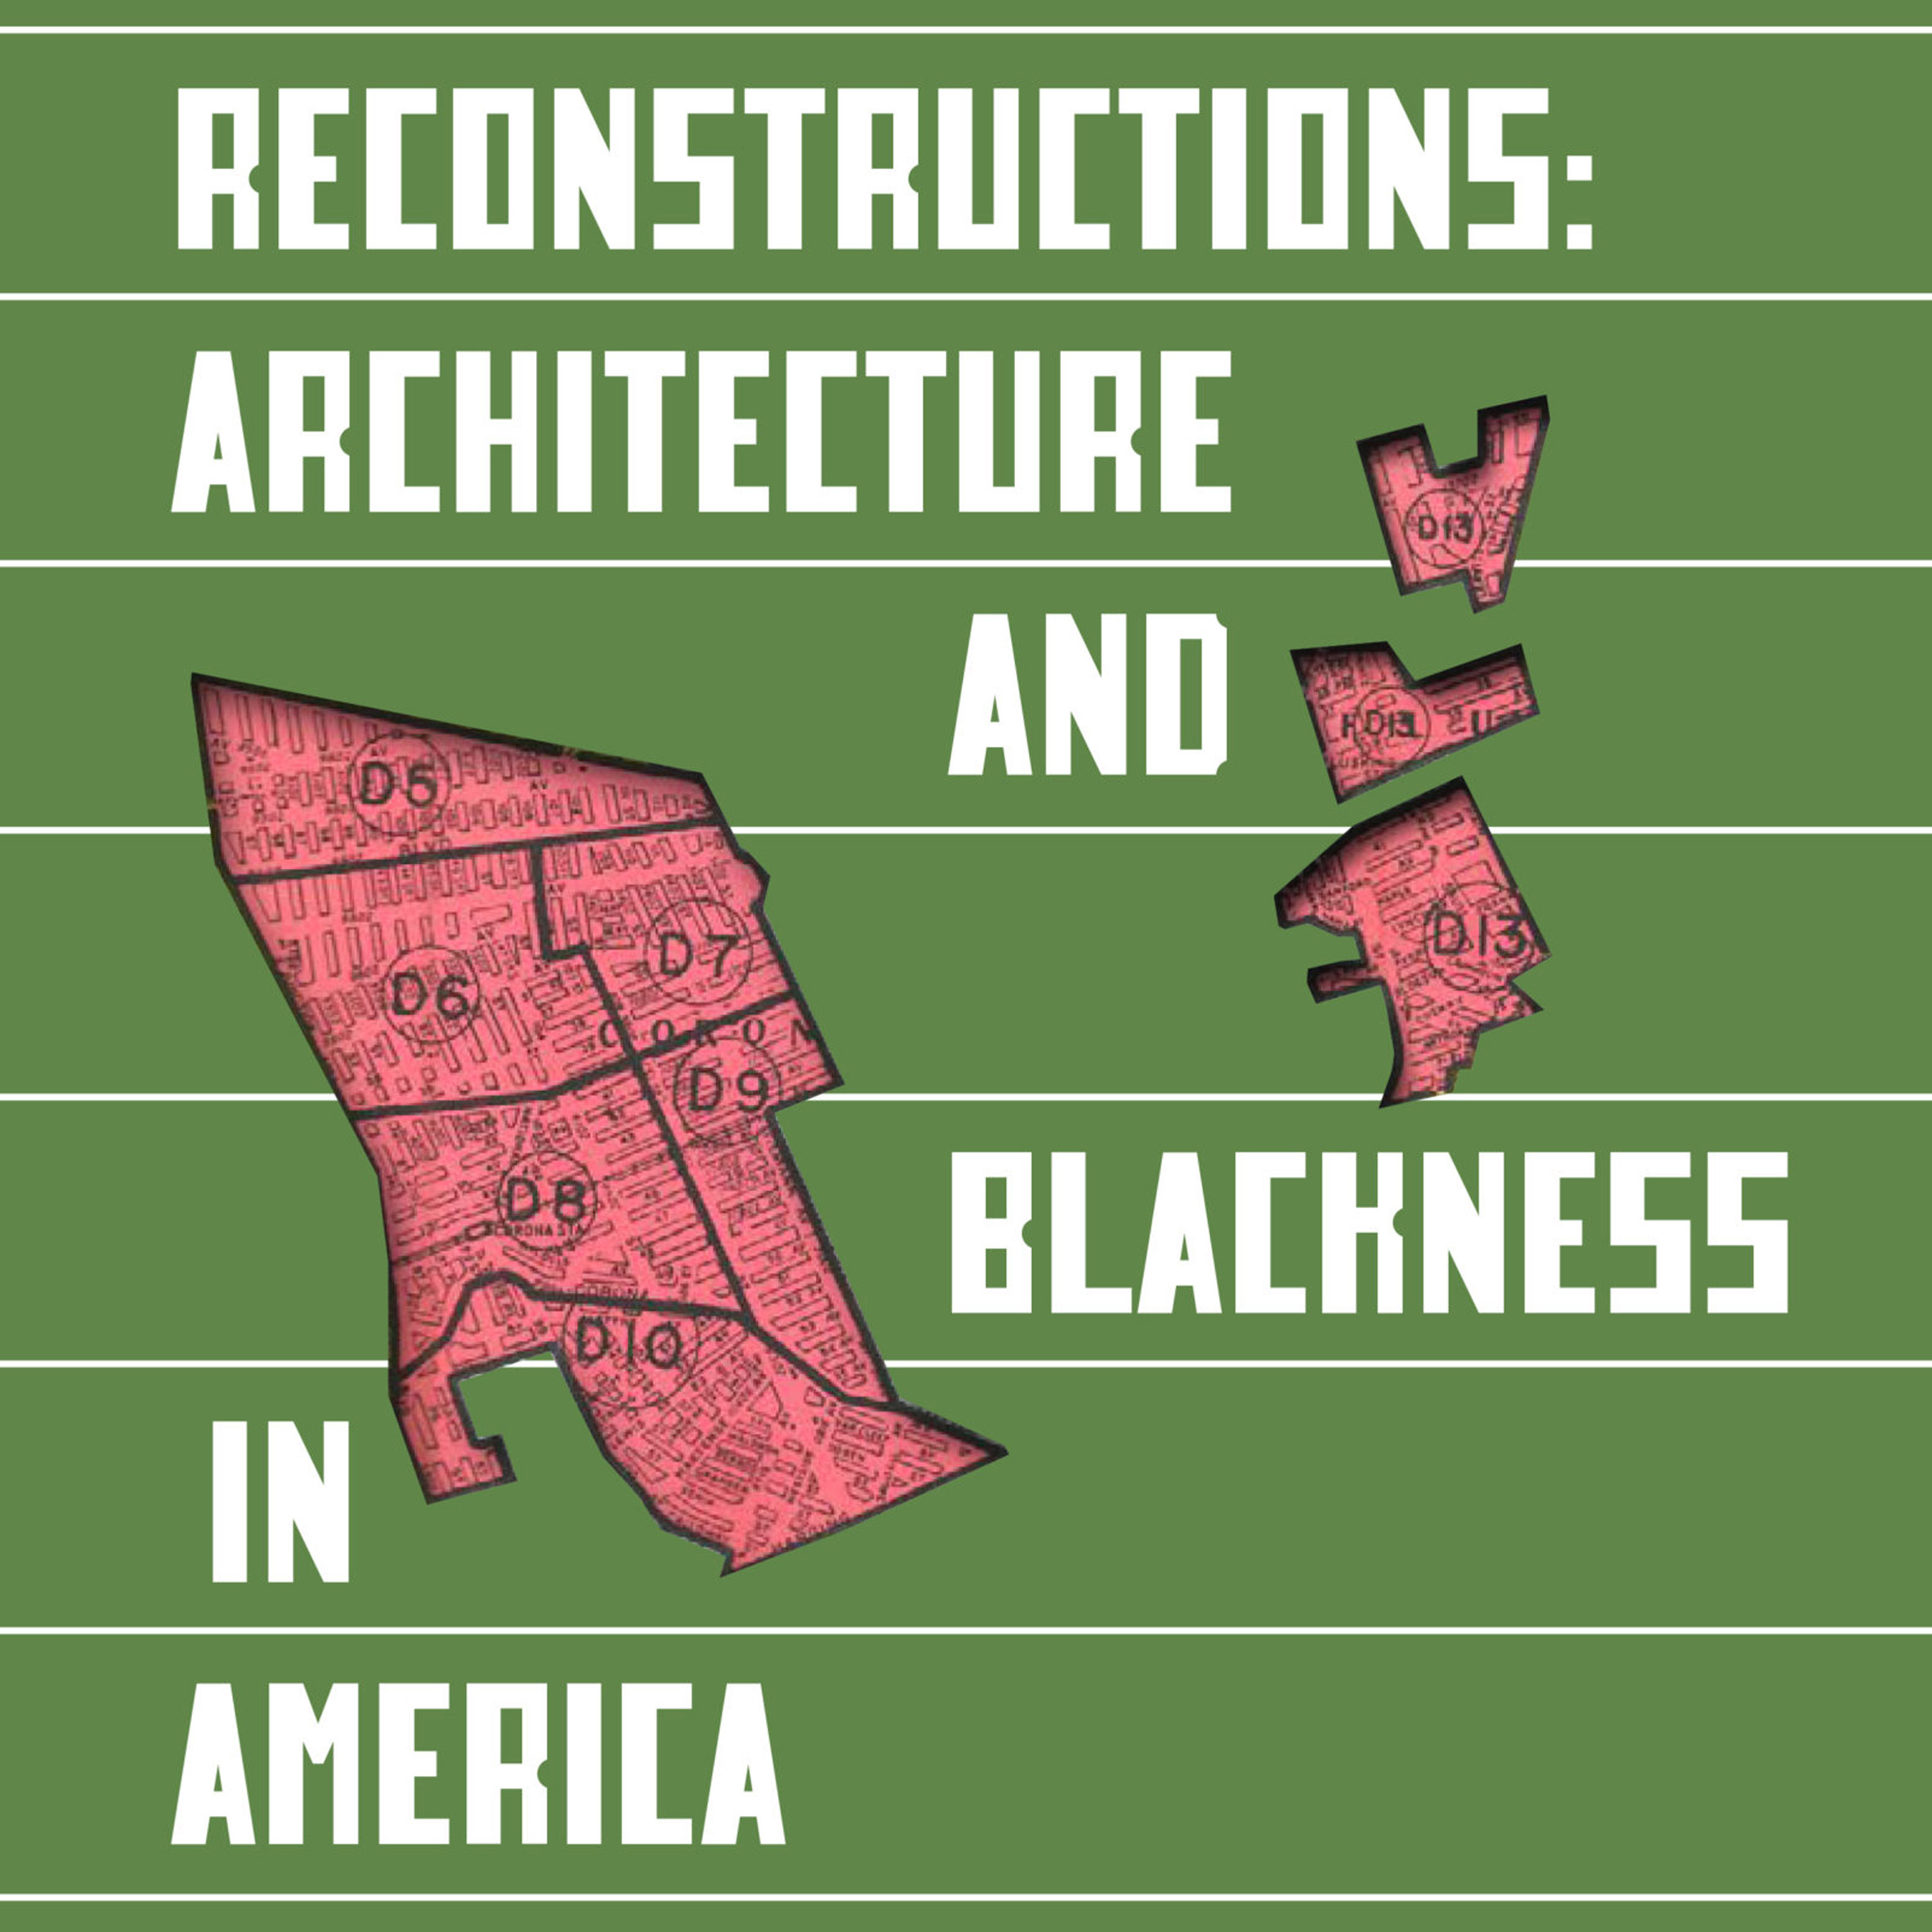 Reconstructions: Architecture and Blackness in America MoMA poster